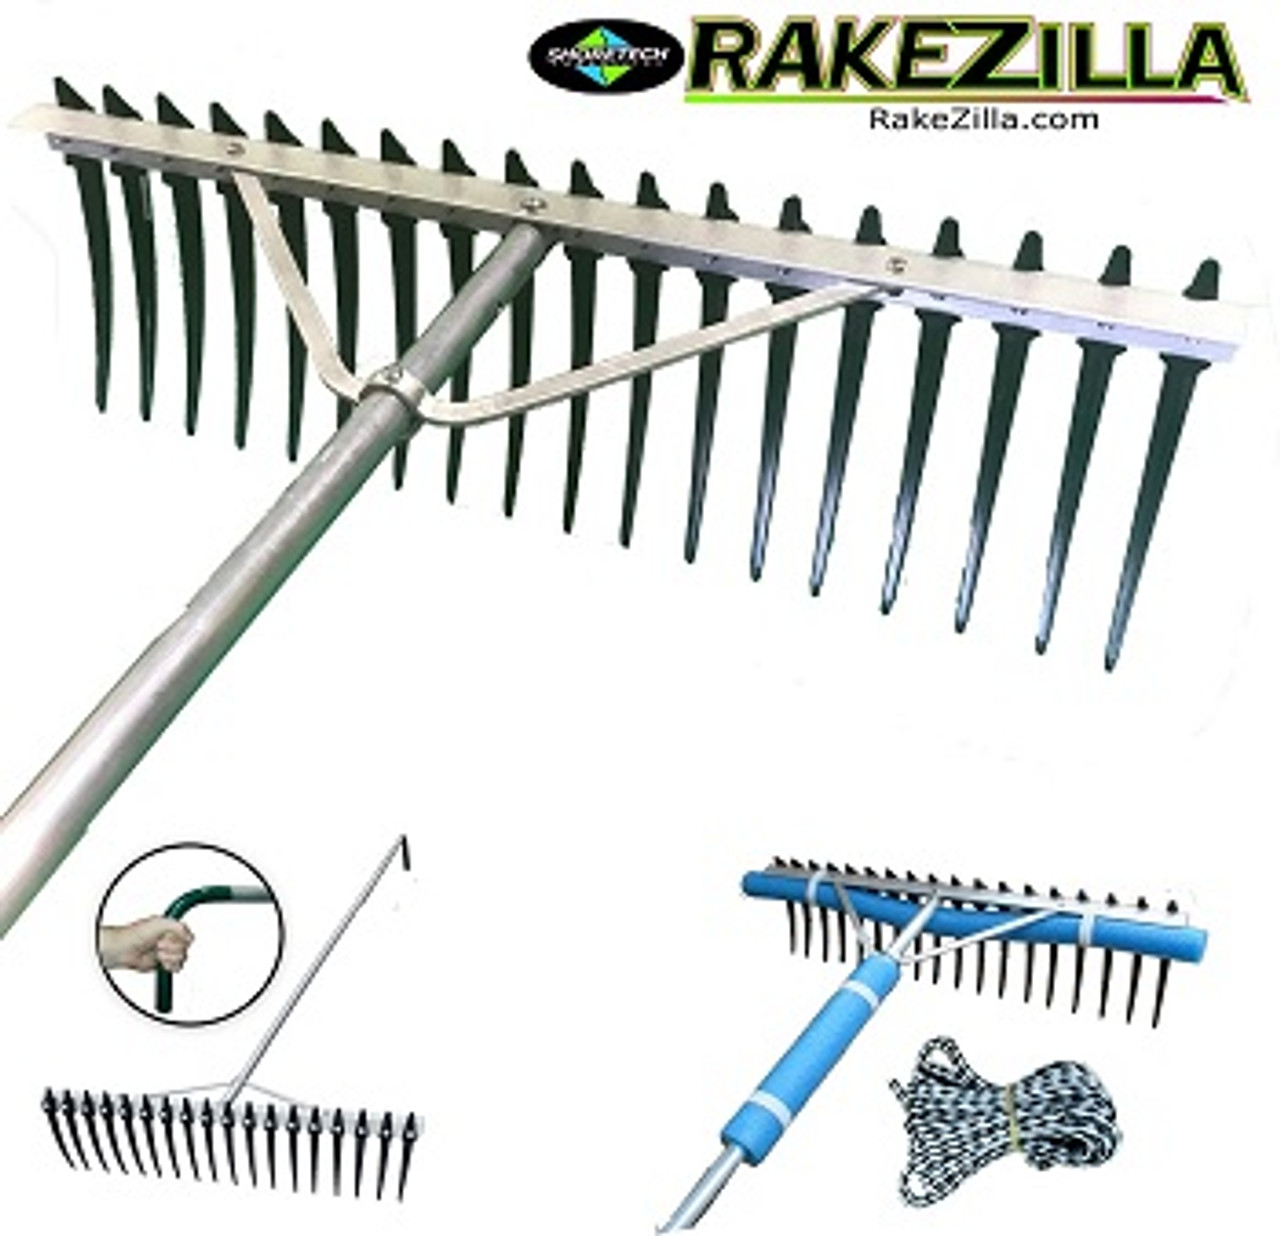 Lake Weed Cleanup Kit | Weed Cutter | Rake / Fork